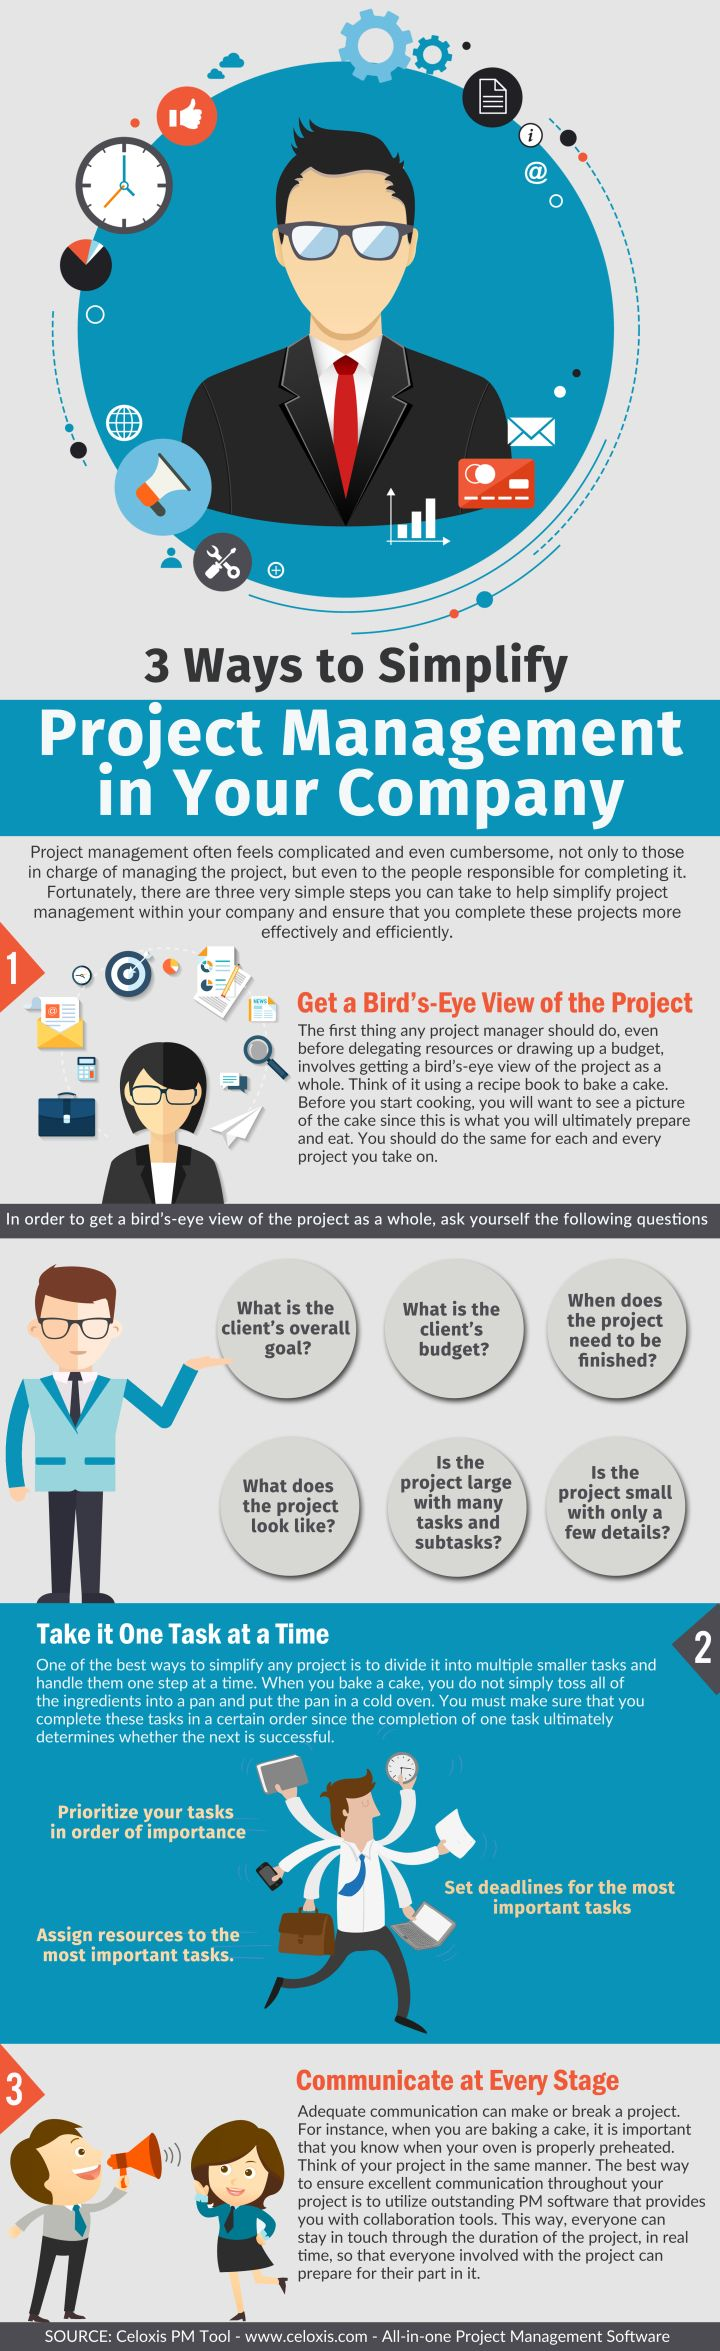 25 best celoxis project management software images on pinterest infographic 3 ways to simplify project management in your company xflitez Images